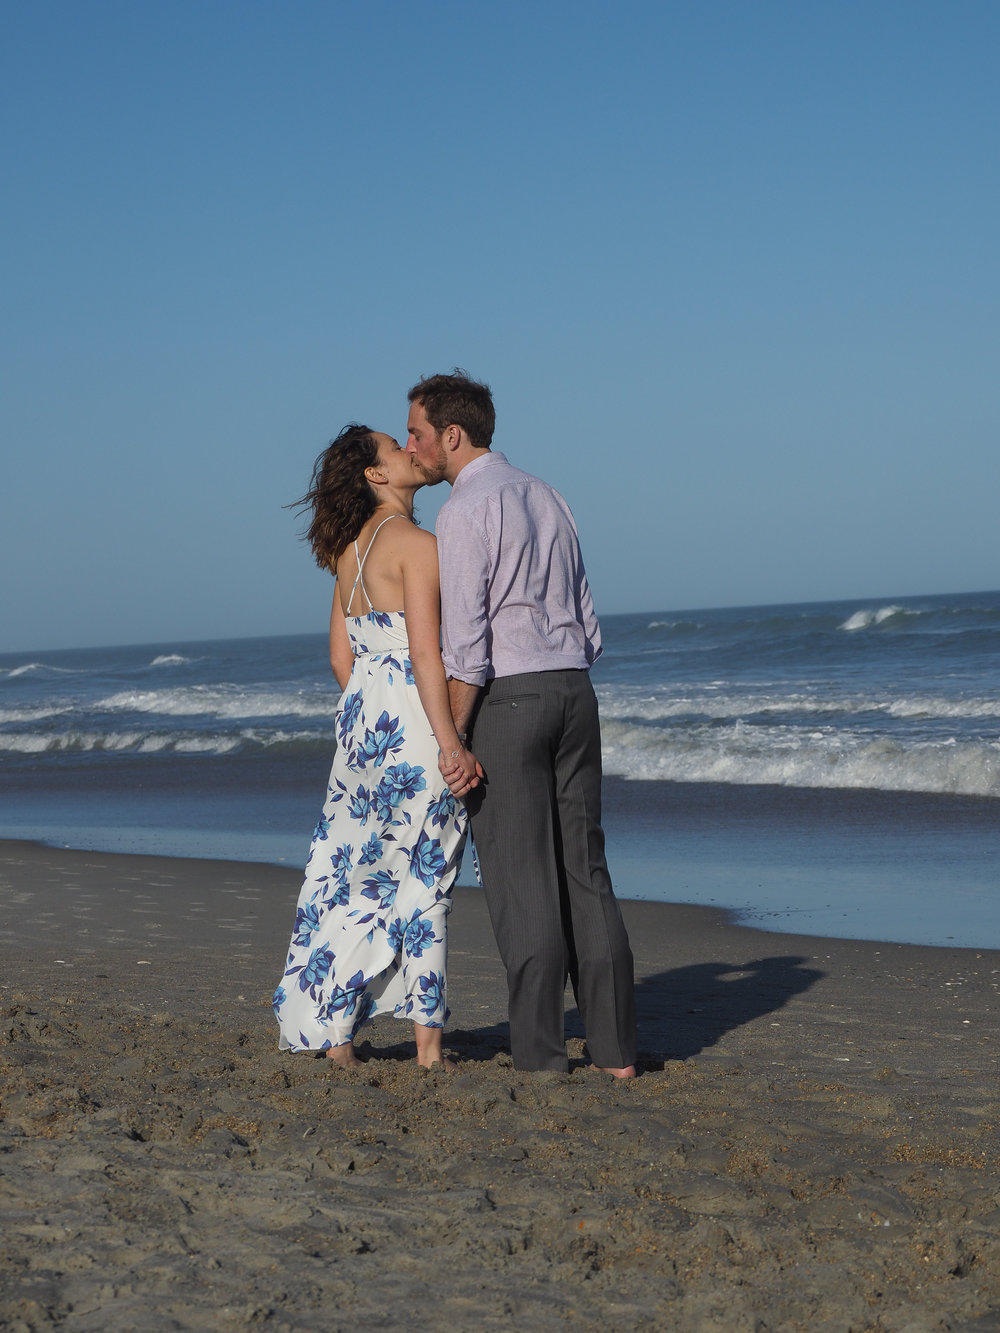 - A walk on the beach, sharing a romantic moment. Wrightsville Beach, NC. Billy Beach Photography.